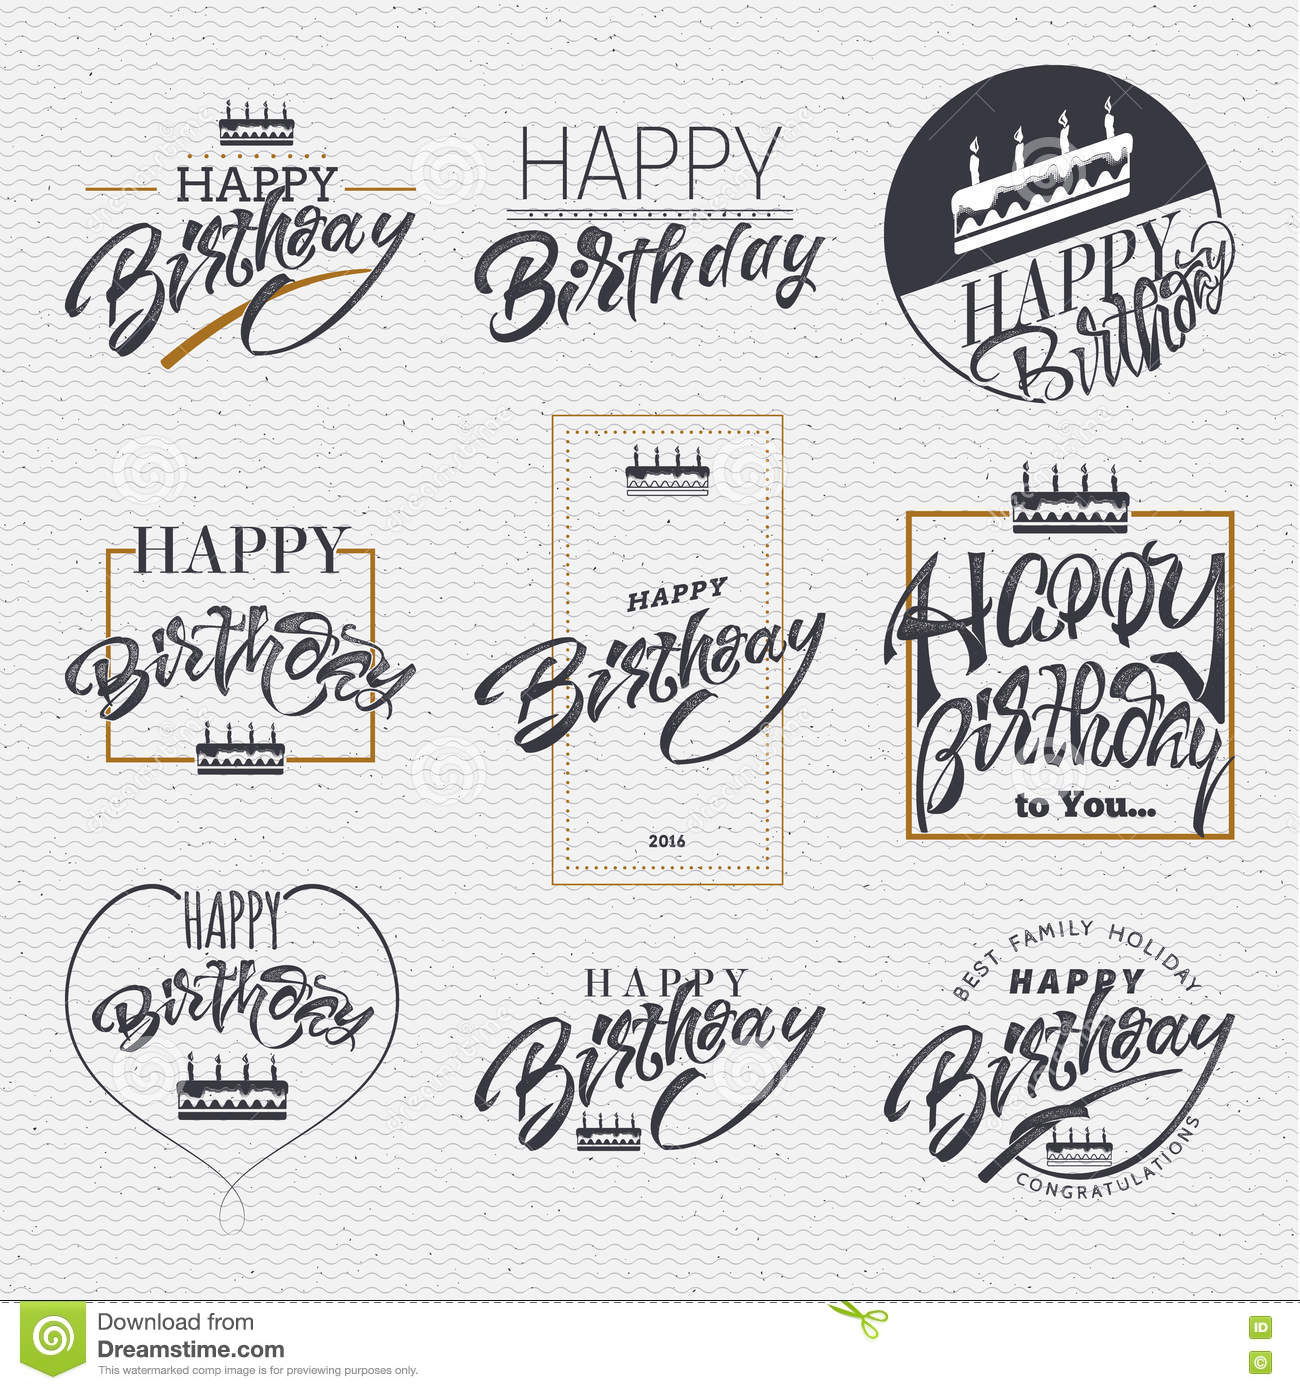 happy birthday stickers for cards ; happy-birthday-card-sticker-can-be-used-to-design-websites-clothes-insignia-made-help-lettering-calligraphy-73527815